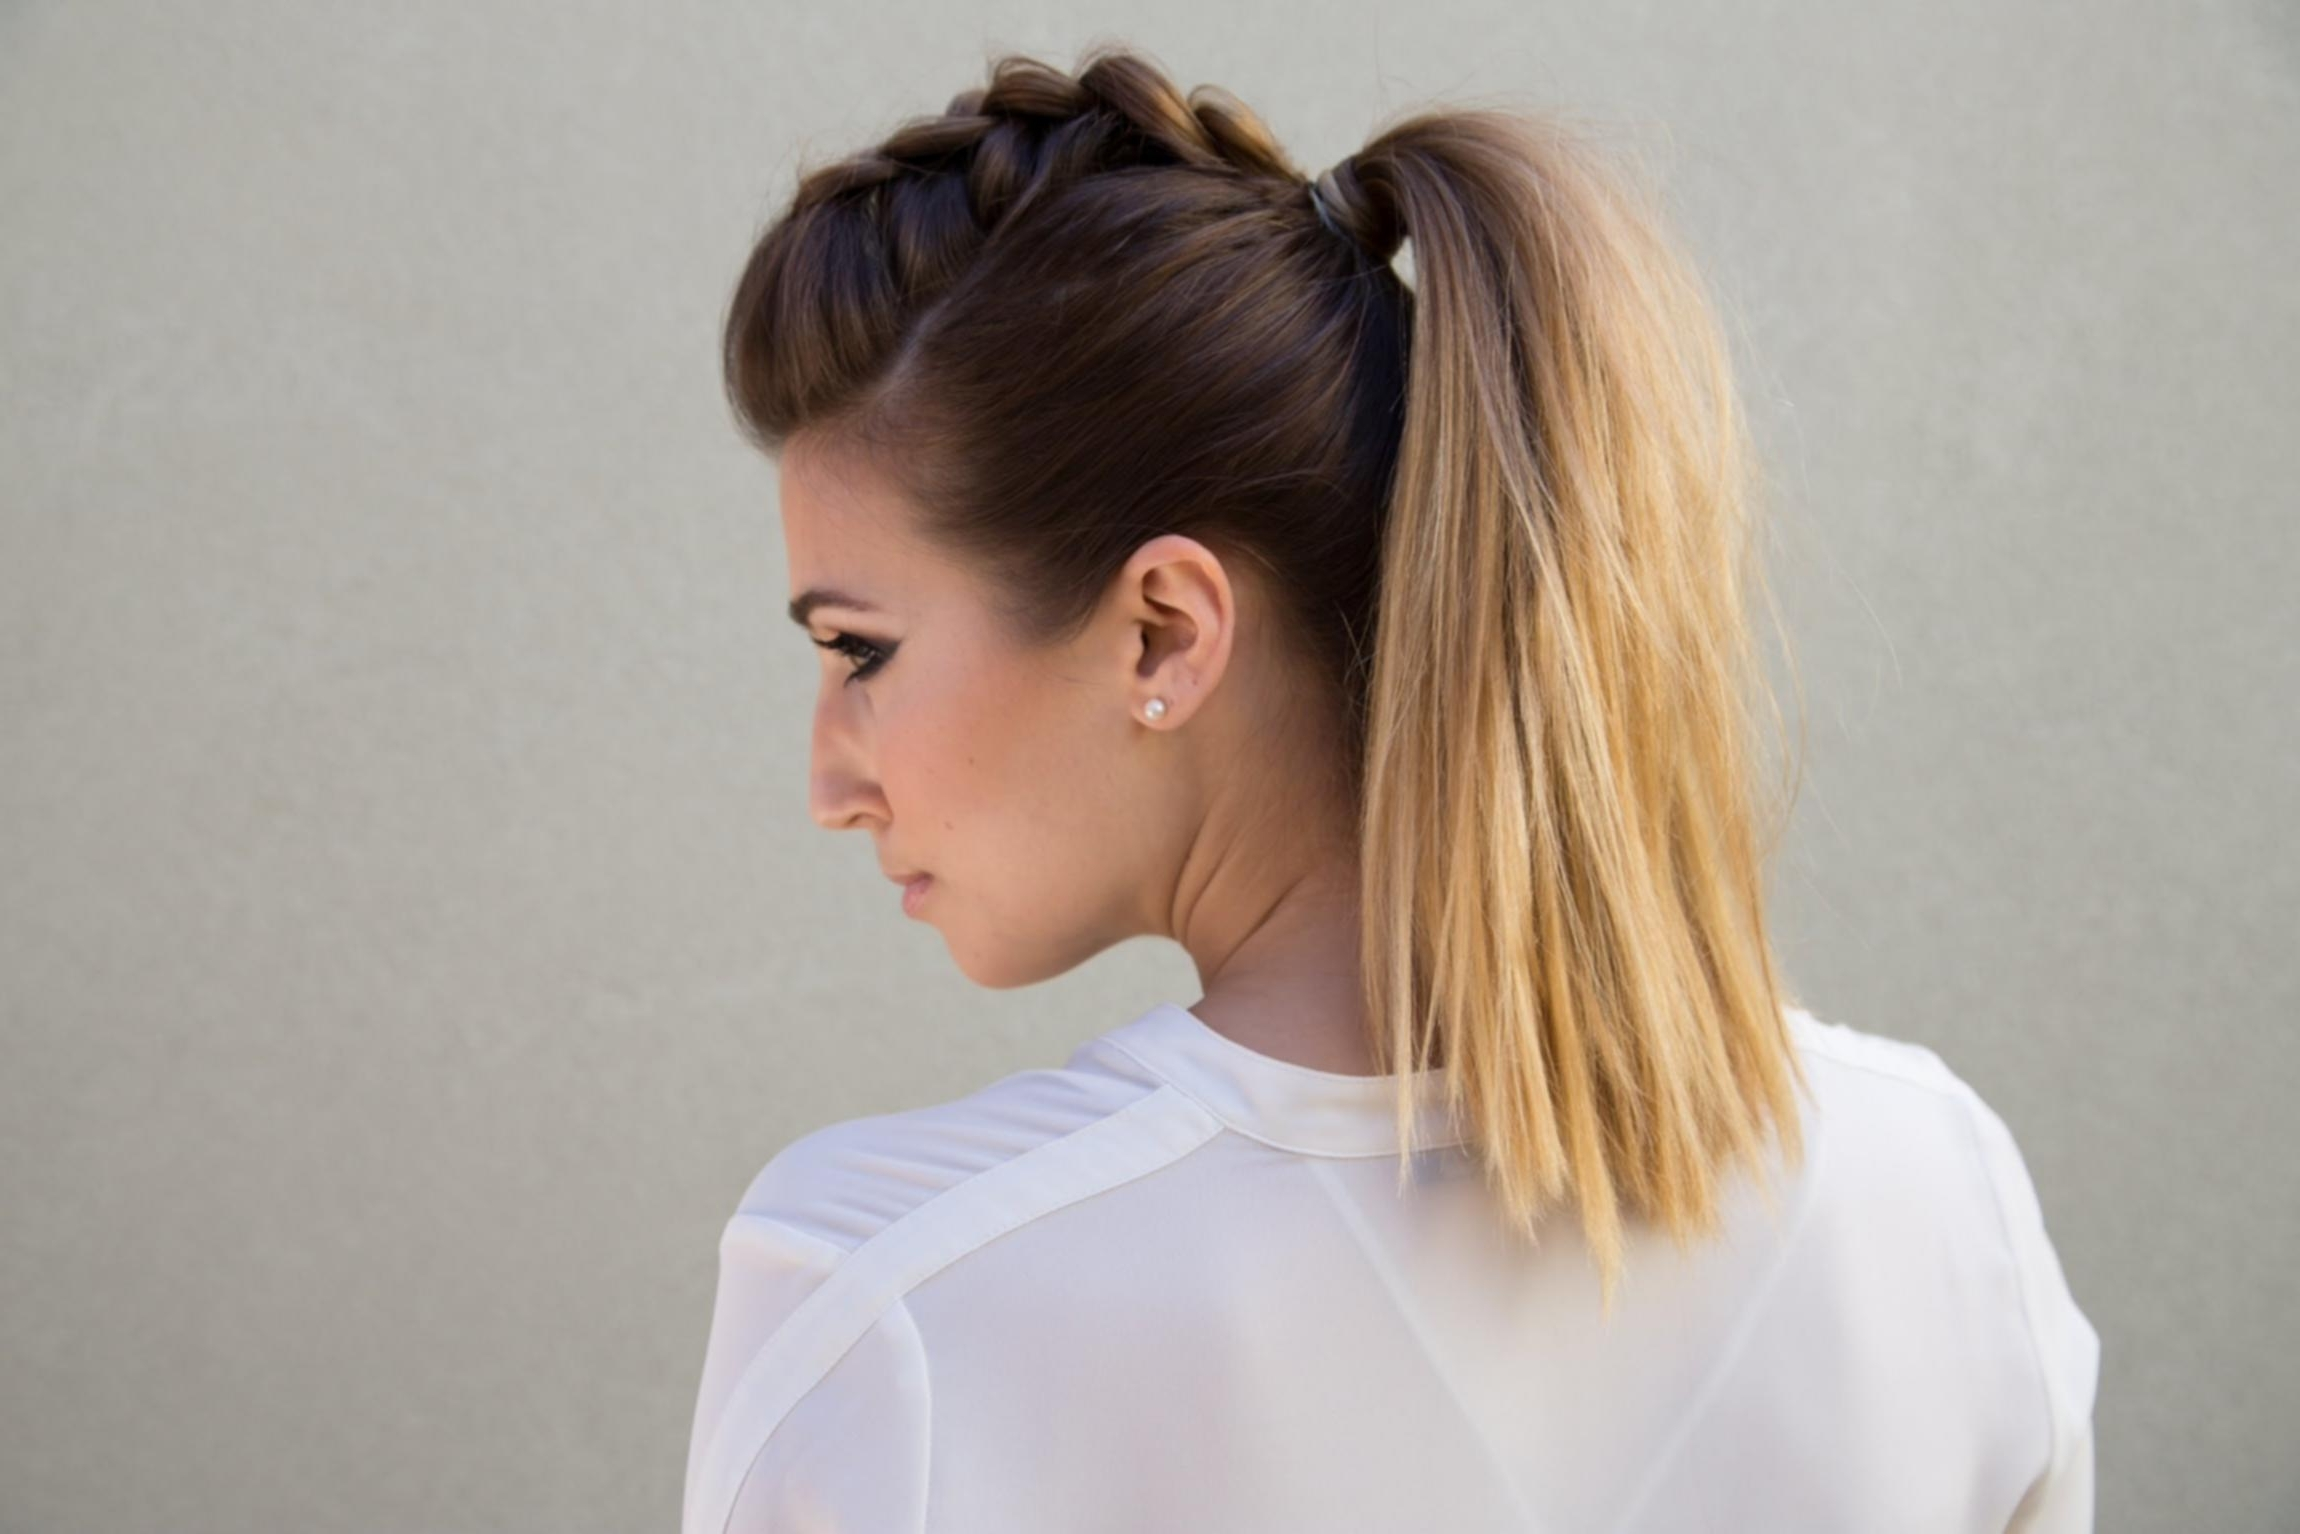 Latest Black Ponytail Hairstyles With A Bouffant Pertaining To Surprising Hair Cut Of French Braid Ponytail For Black Hair Bouffant (View 9 of 20)